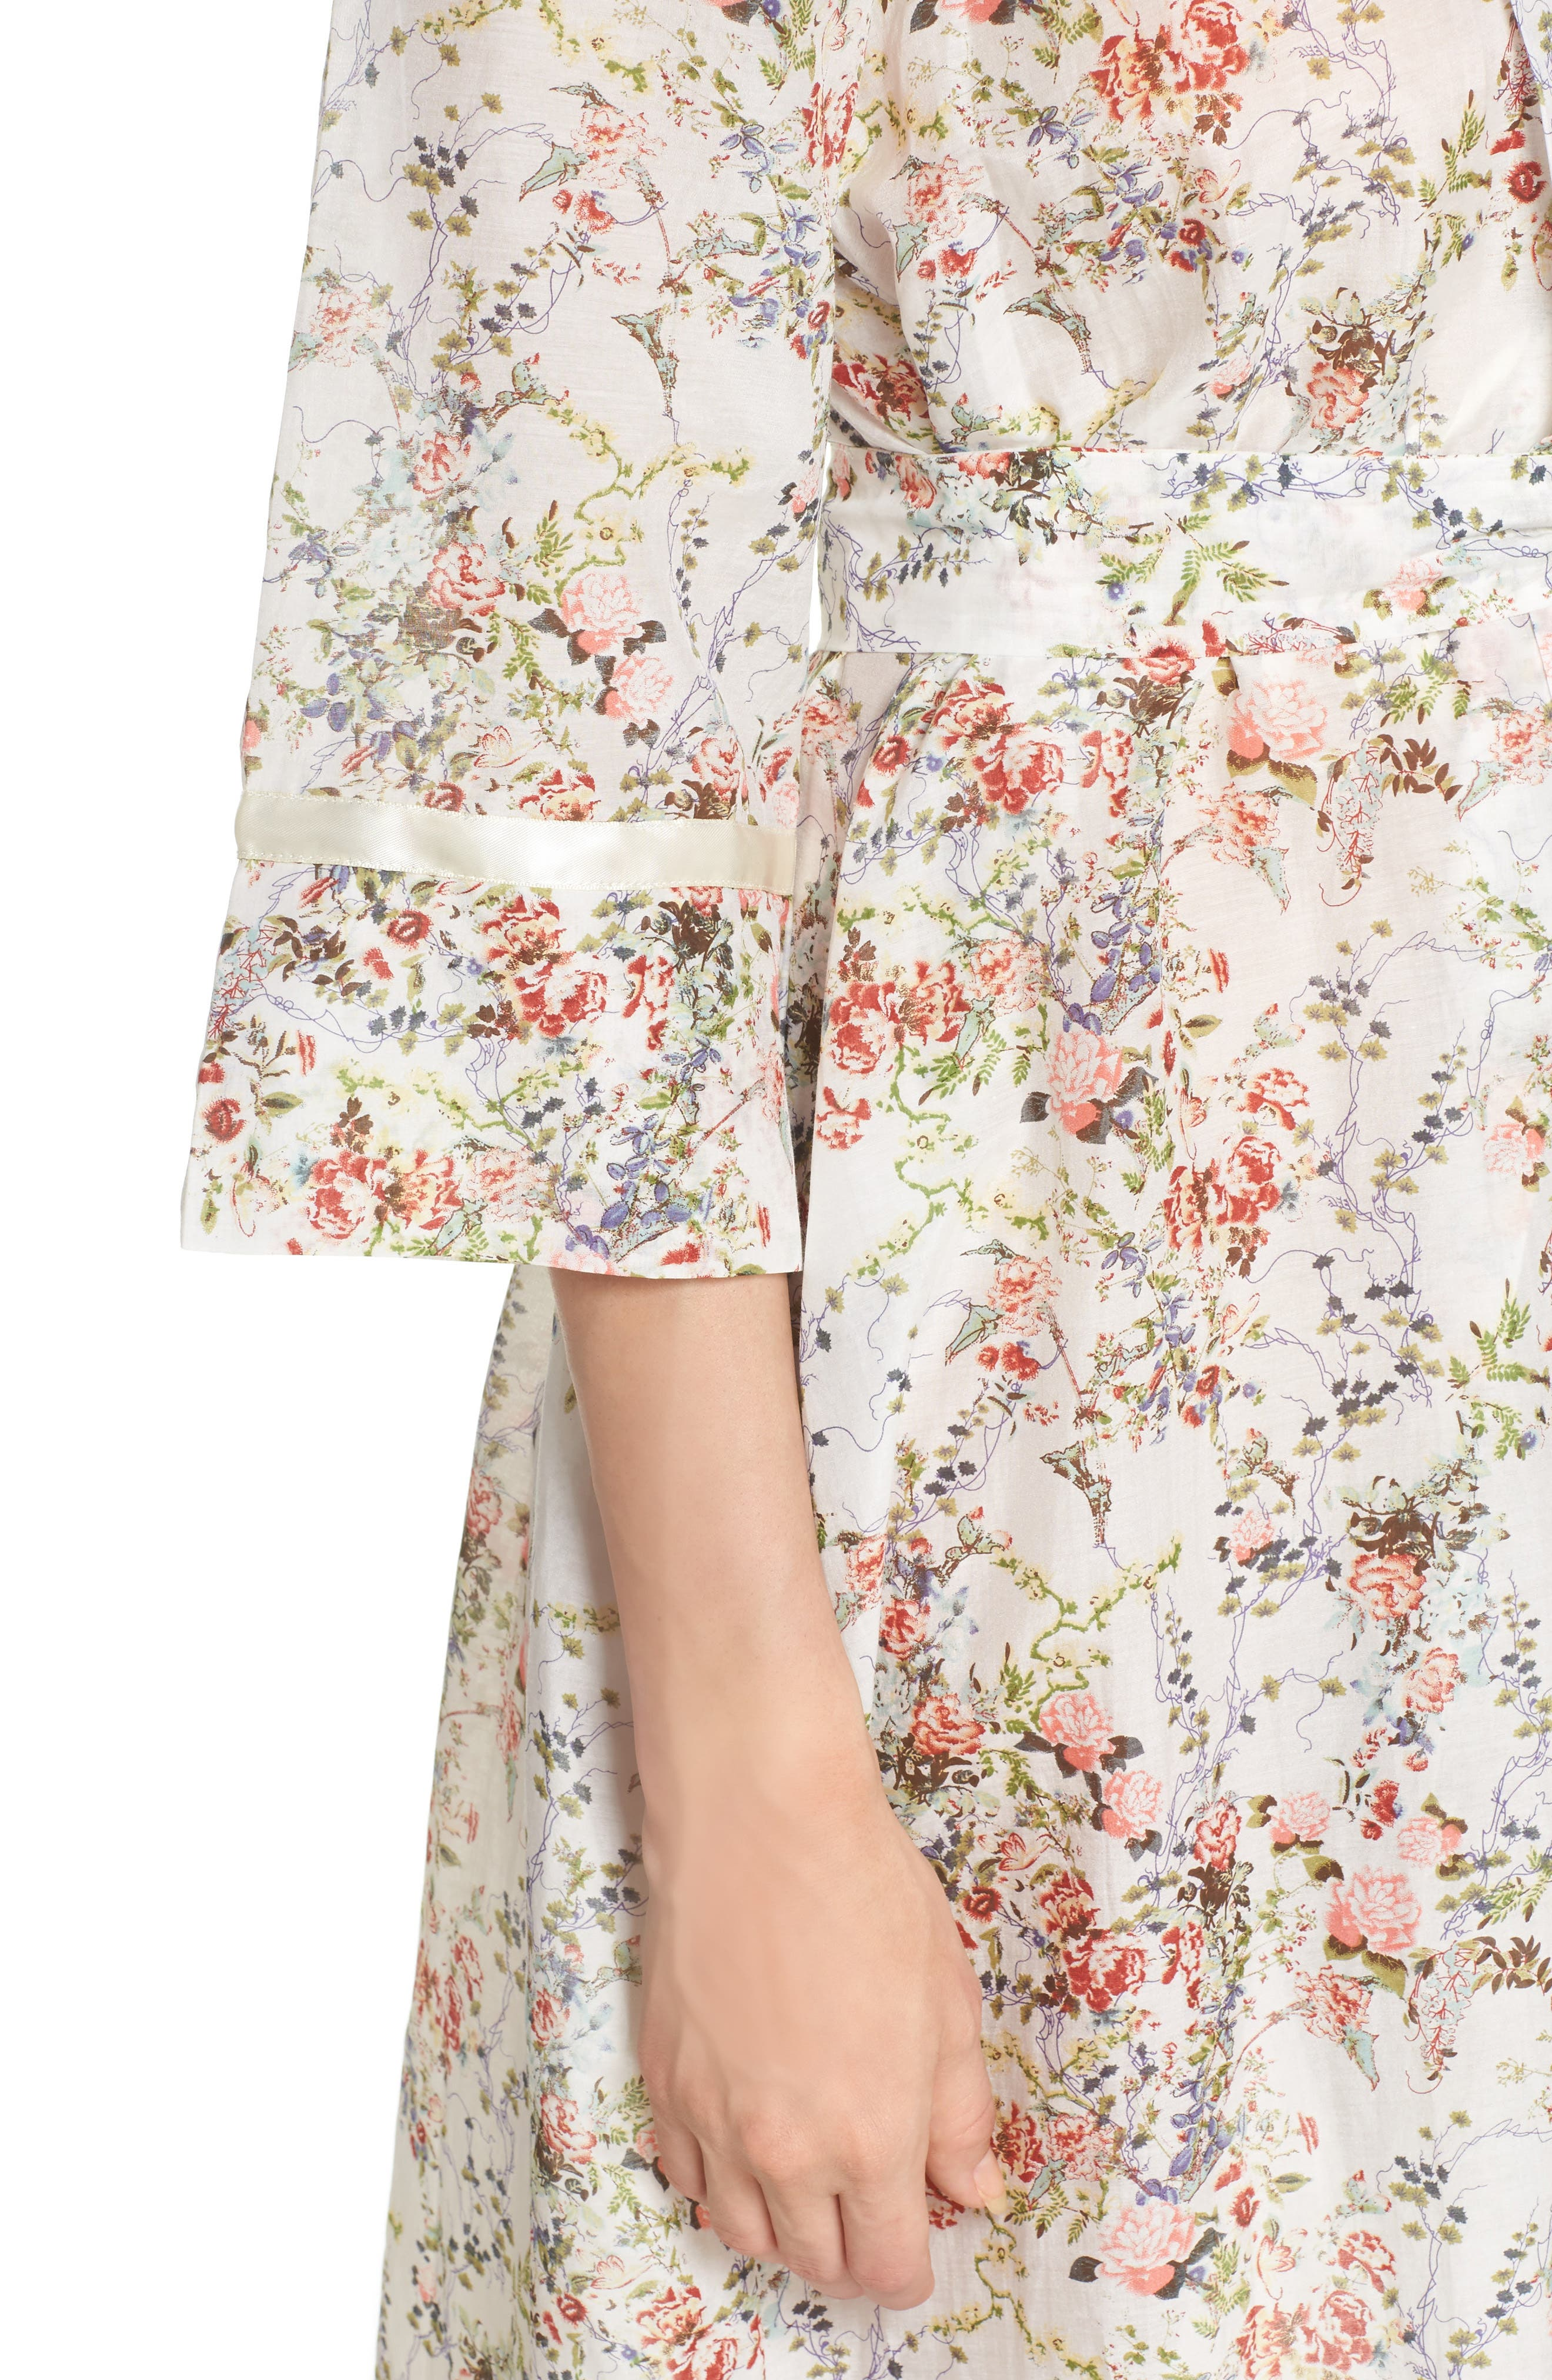 Yolly Floral Cotton & Silk Robe,                             Alternate thumbnail 5, color,                             Ivory Floral